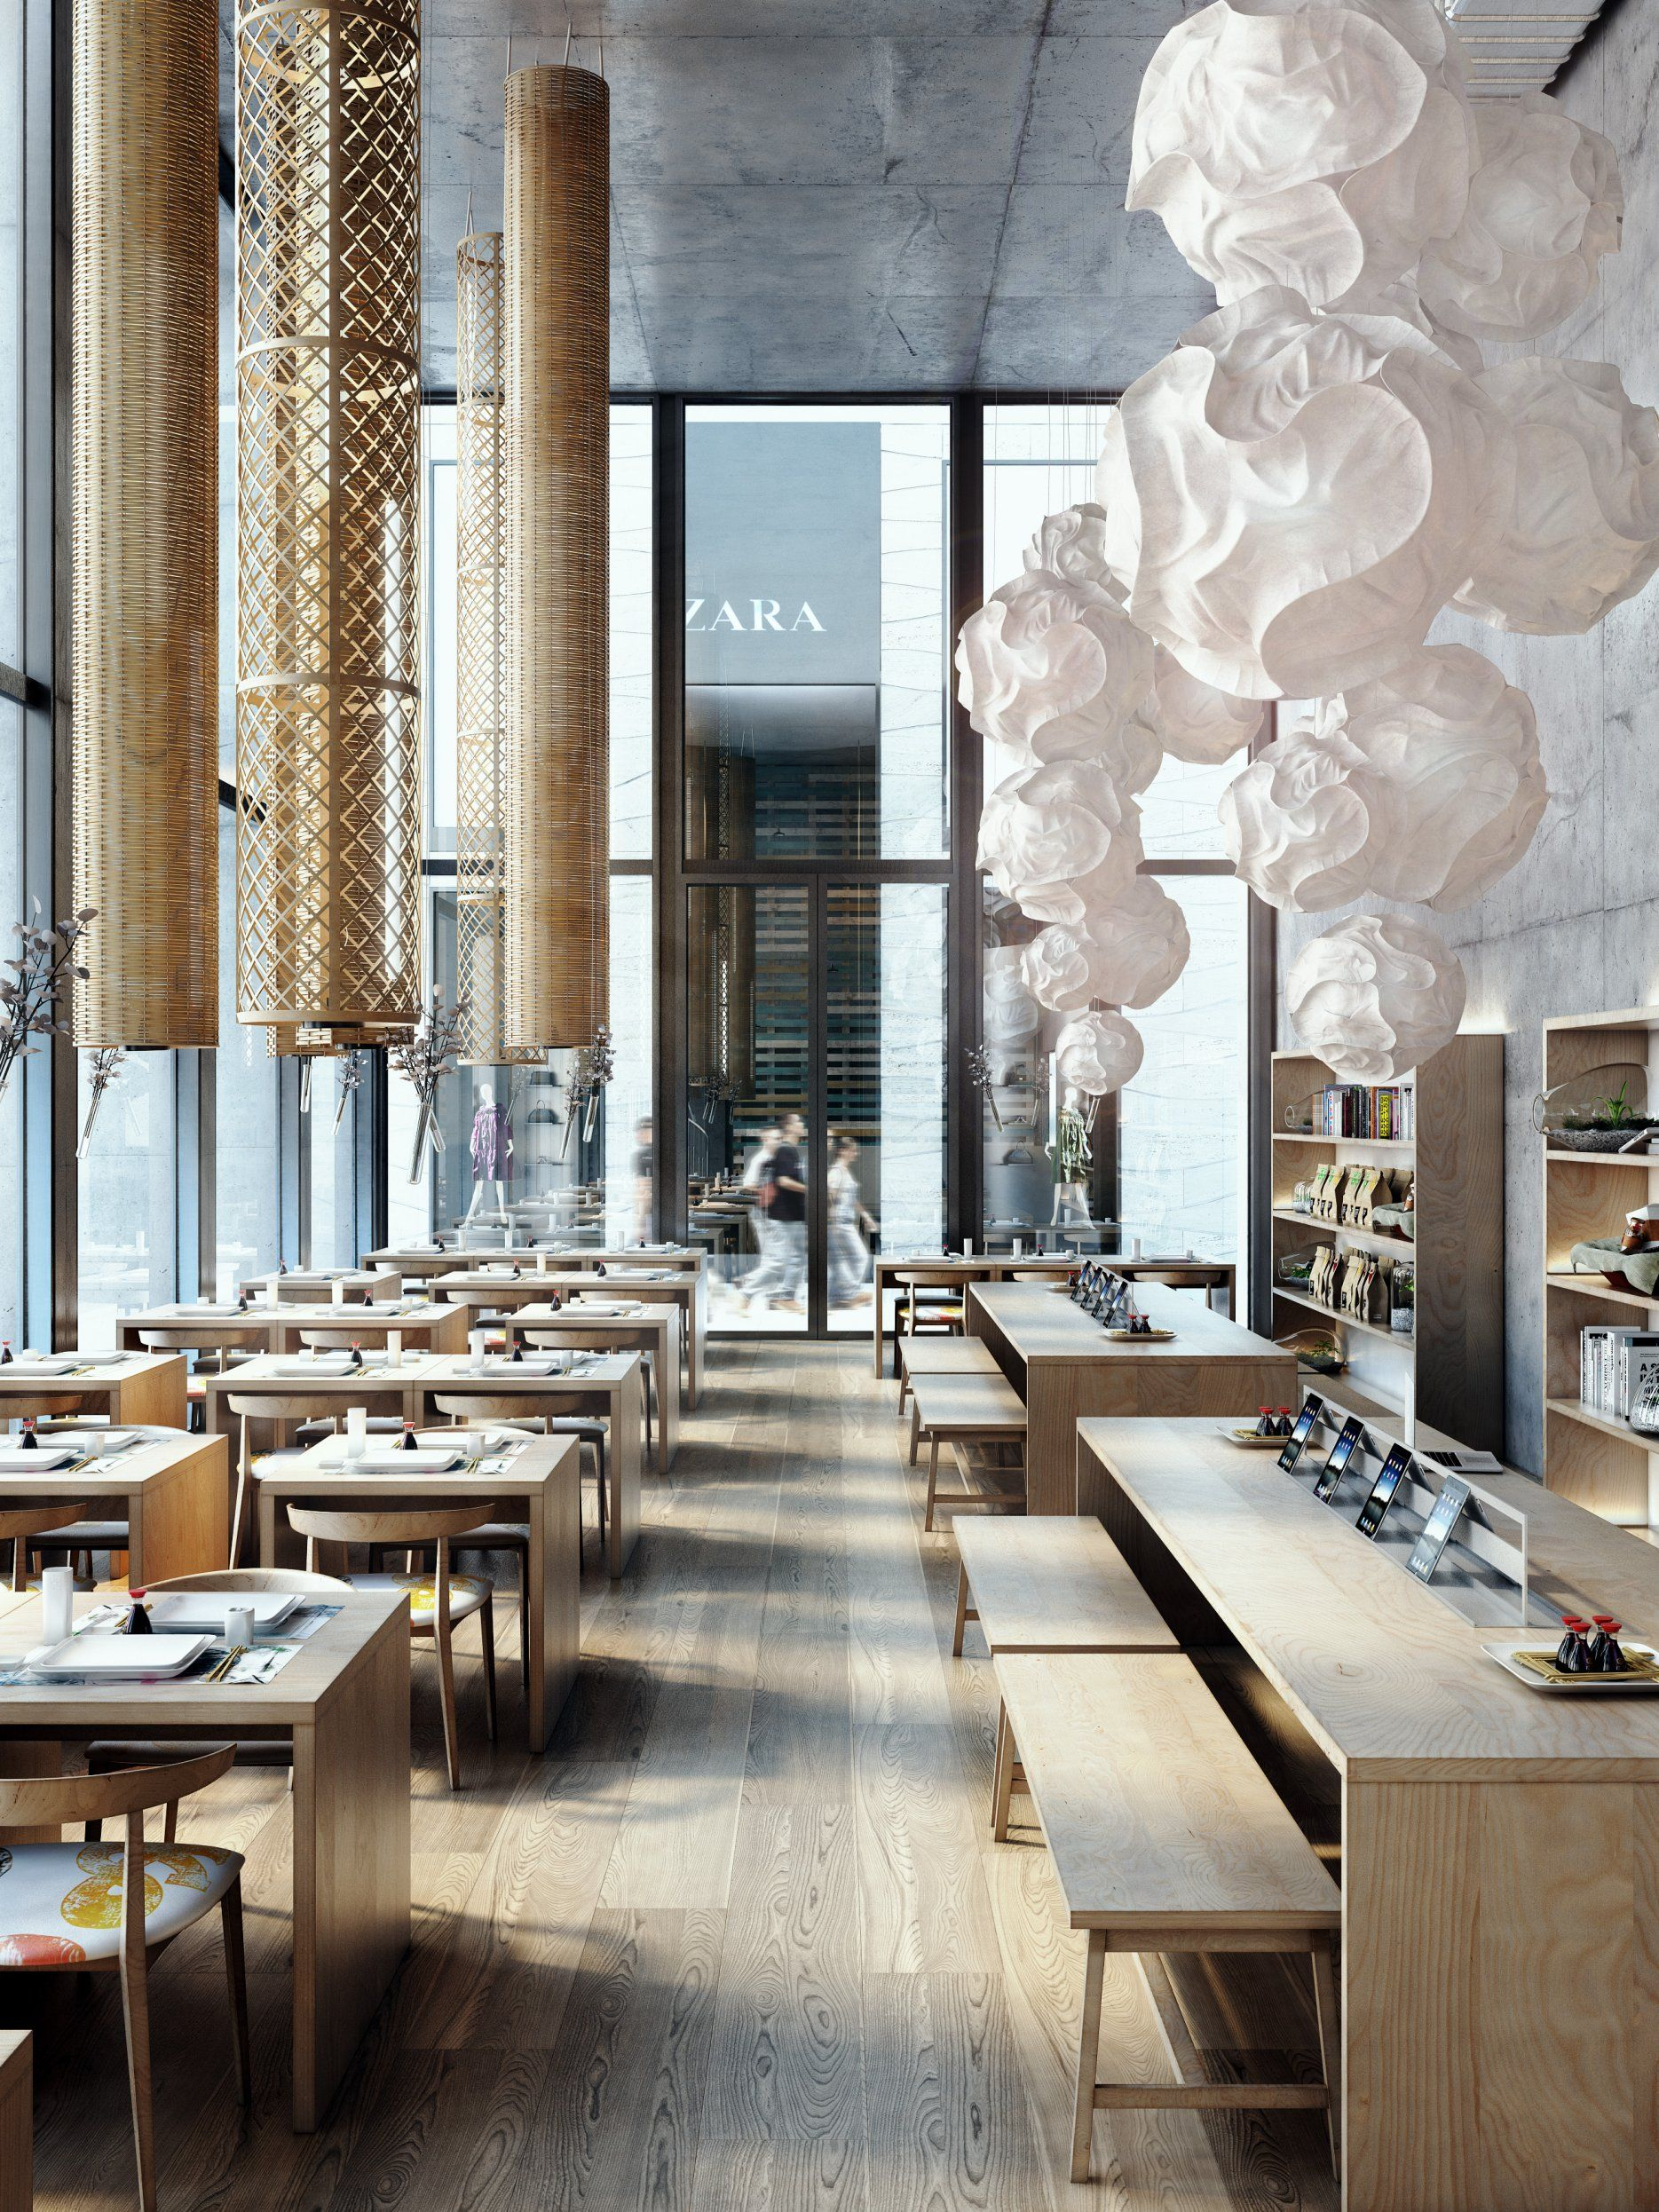 1052 Best Interior Design Images On Pinterest: Minimal, Wood, All Natural Style